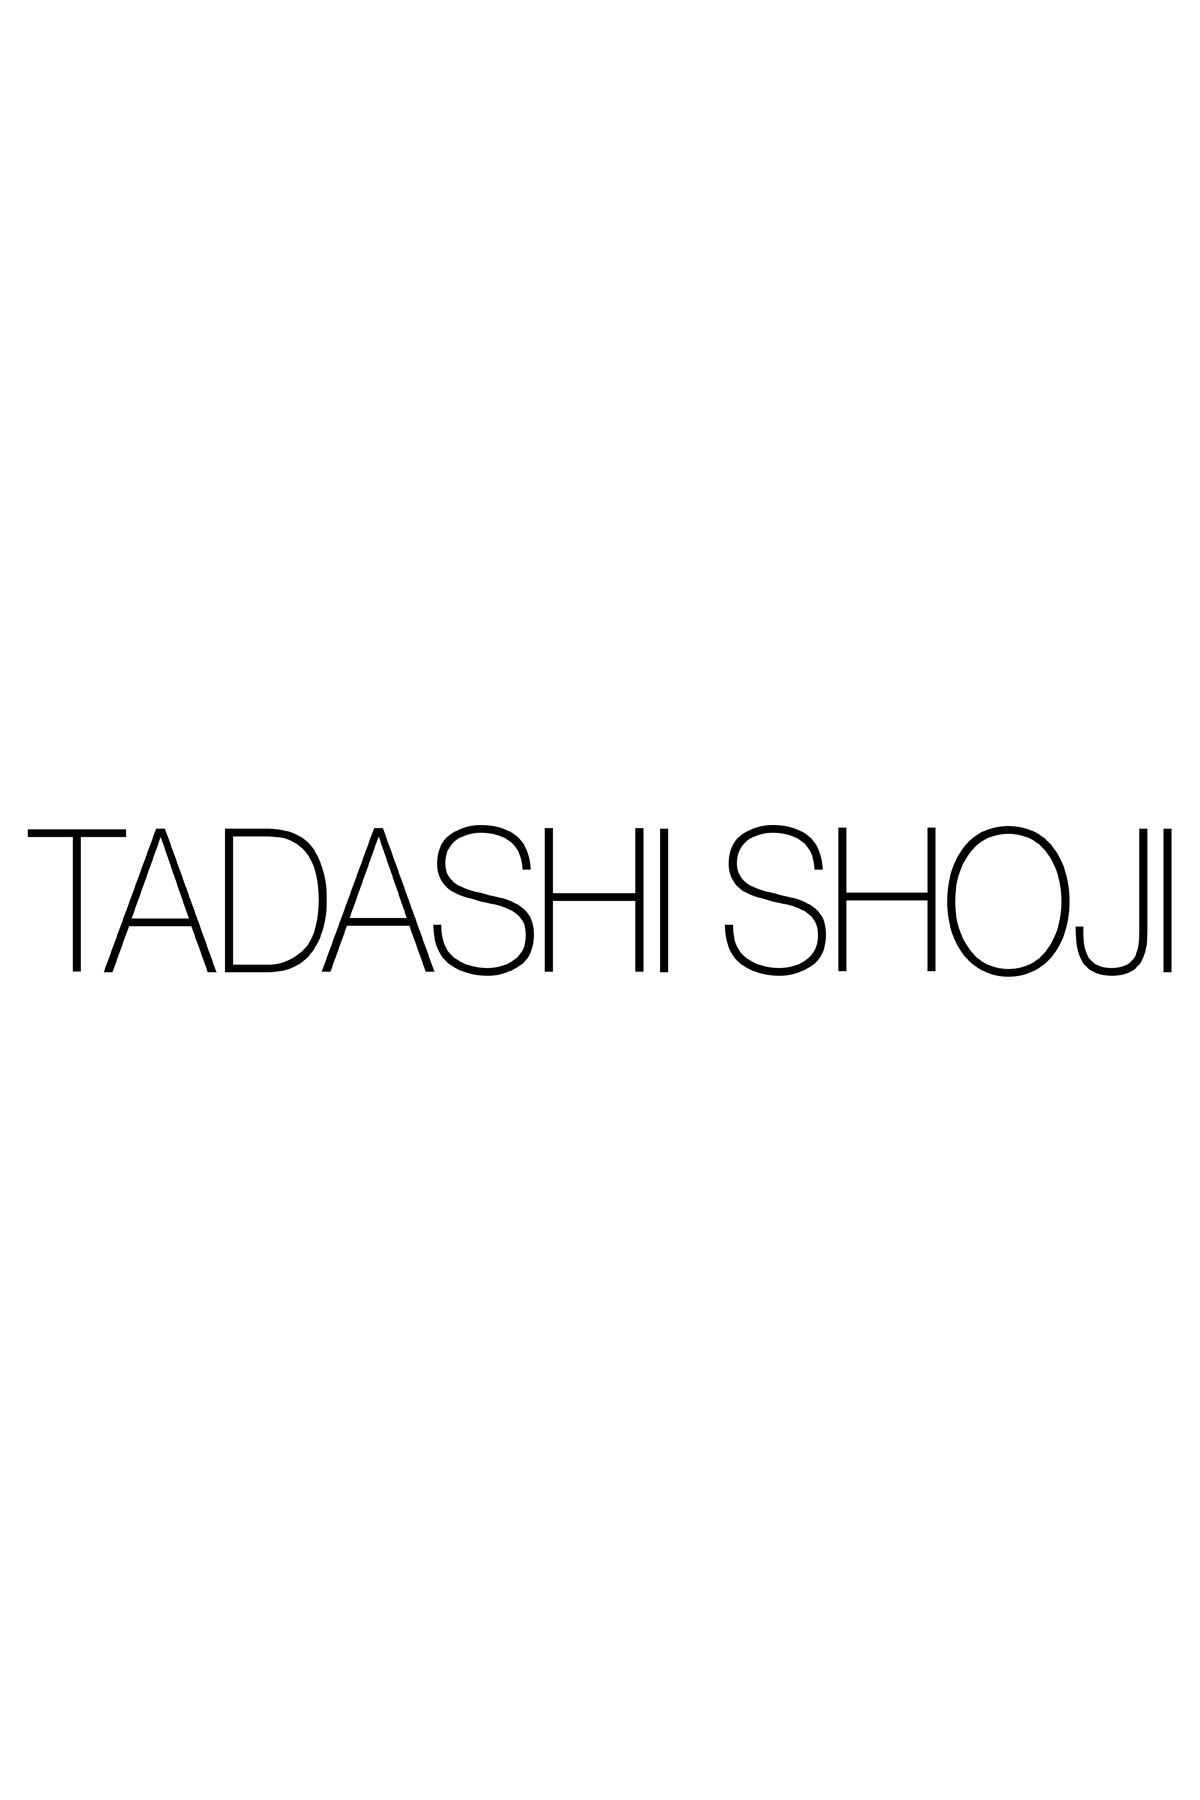 Tadashi Shoji Detail - Corded Embroidery on Tulle ¾ Sleeve Gown